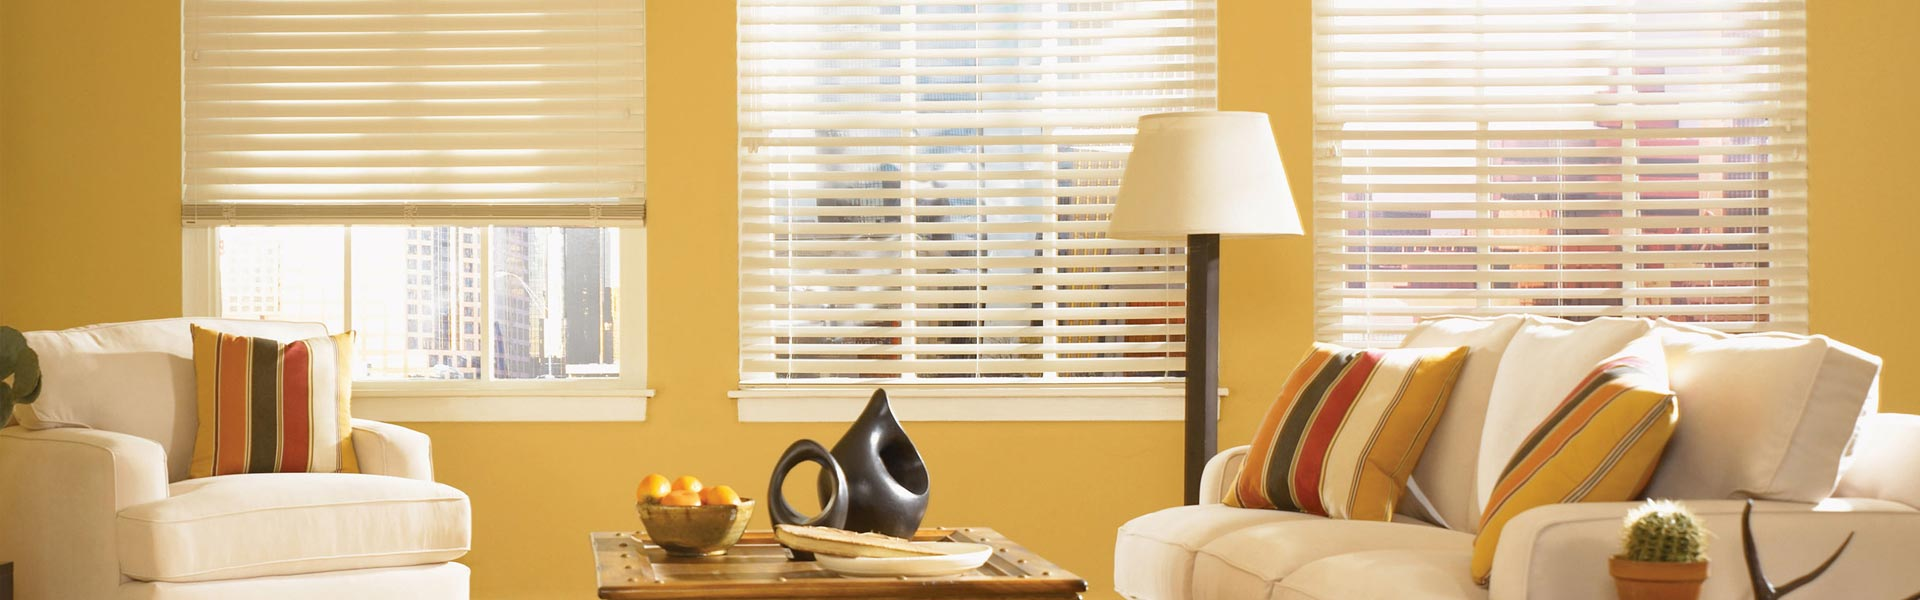 delicate important tips be and most to when thing consider how stains clean can shades is window once your the sheer tricks for again blinds shade cleaning material works